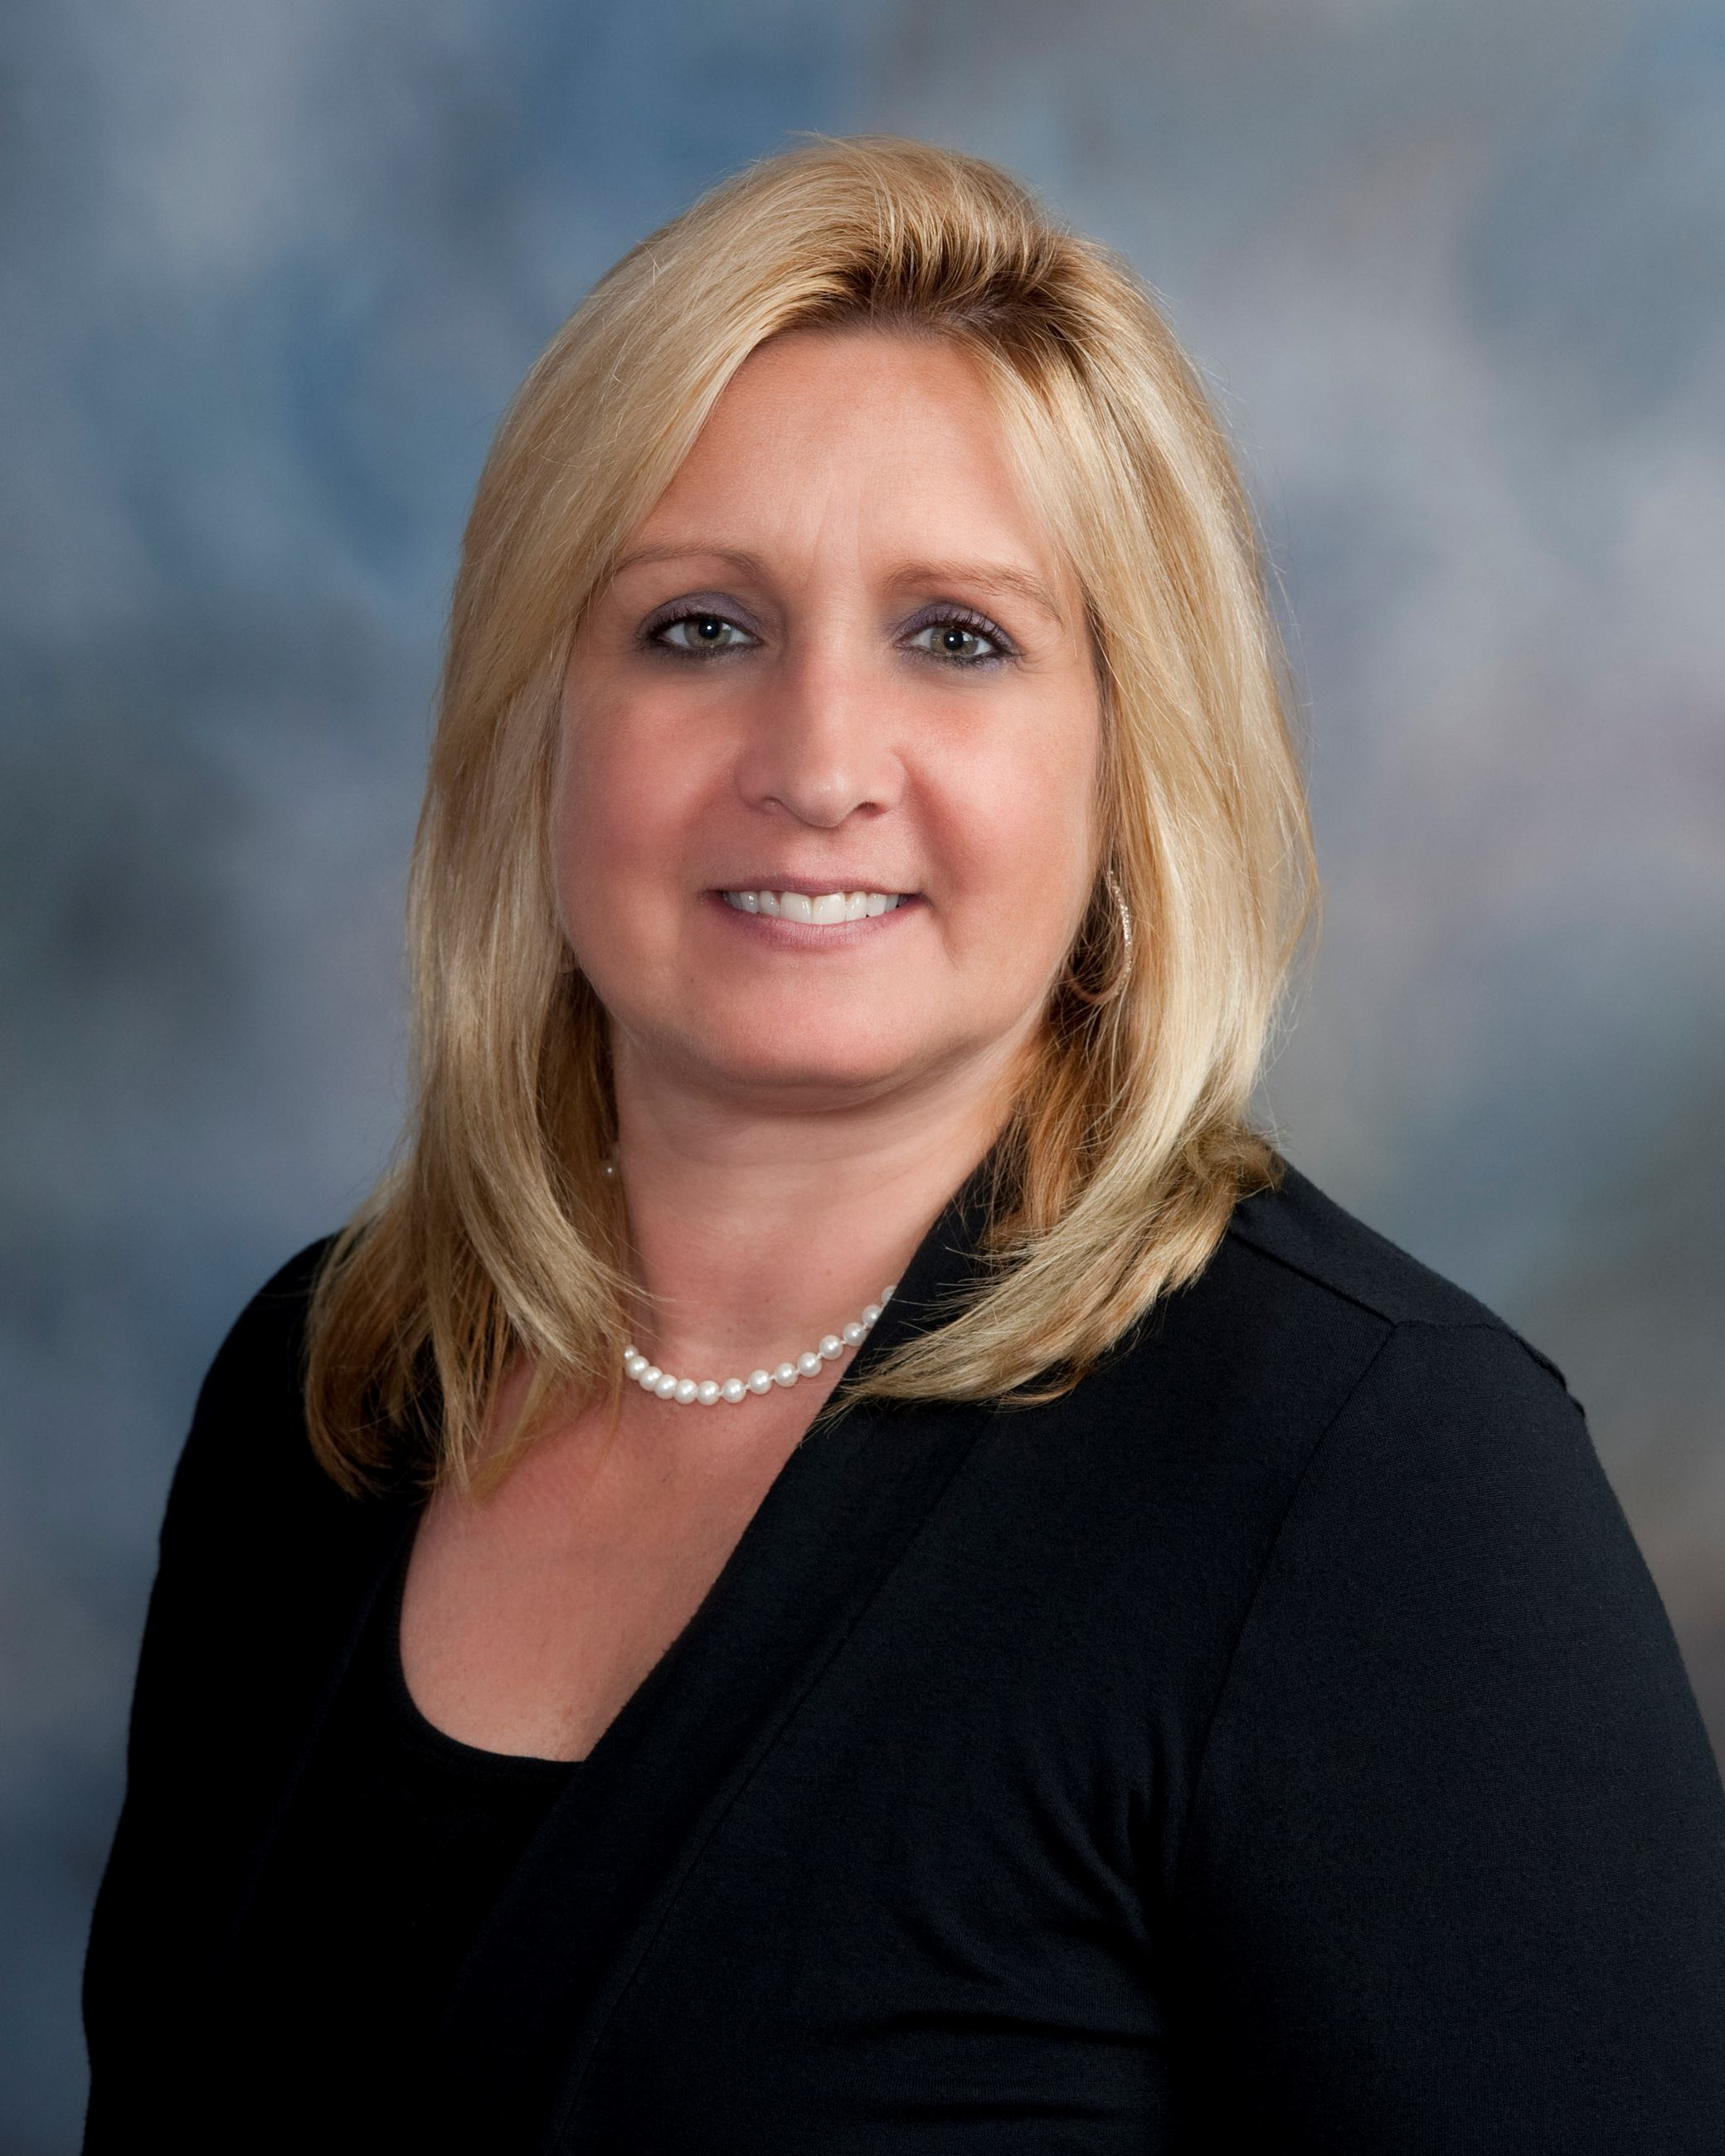 A head shot photo of Katrina Maurer, CRNP, the newest edition at the Honesdale VA Outpatient Clinic